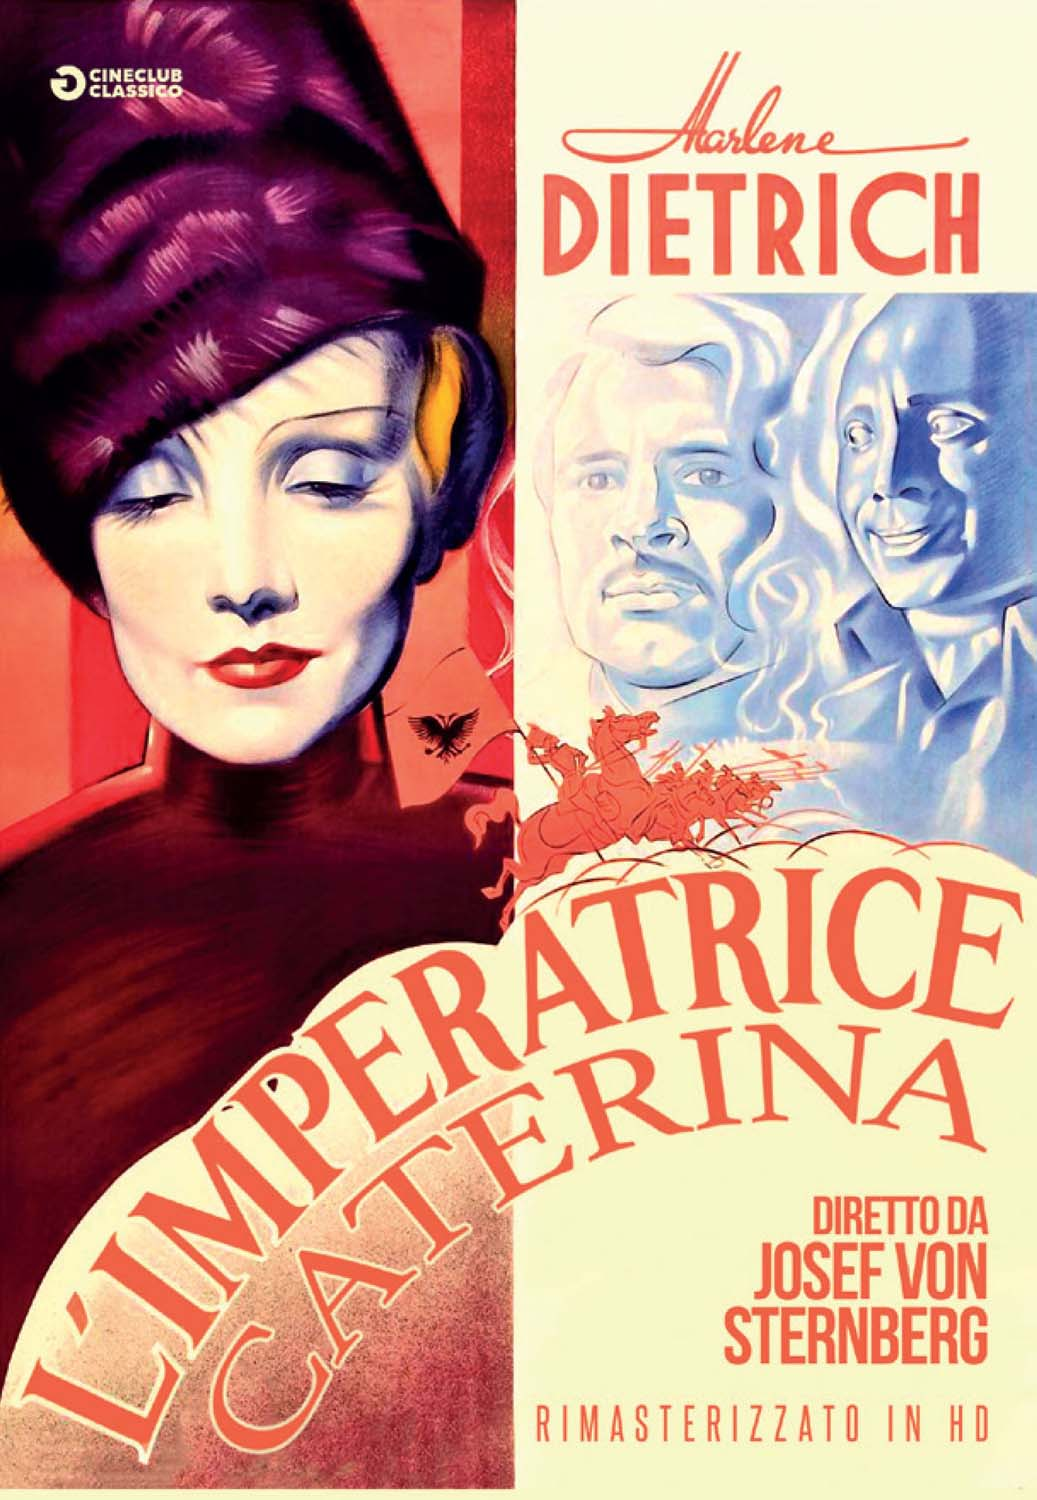 L'IMPERATRICE CATERINA (RIMASTERIZZATO IN HD) (DVD)